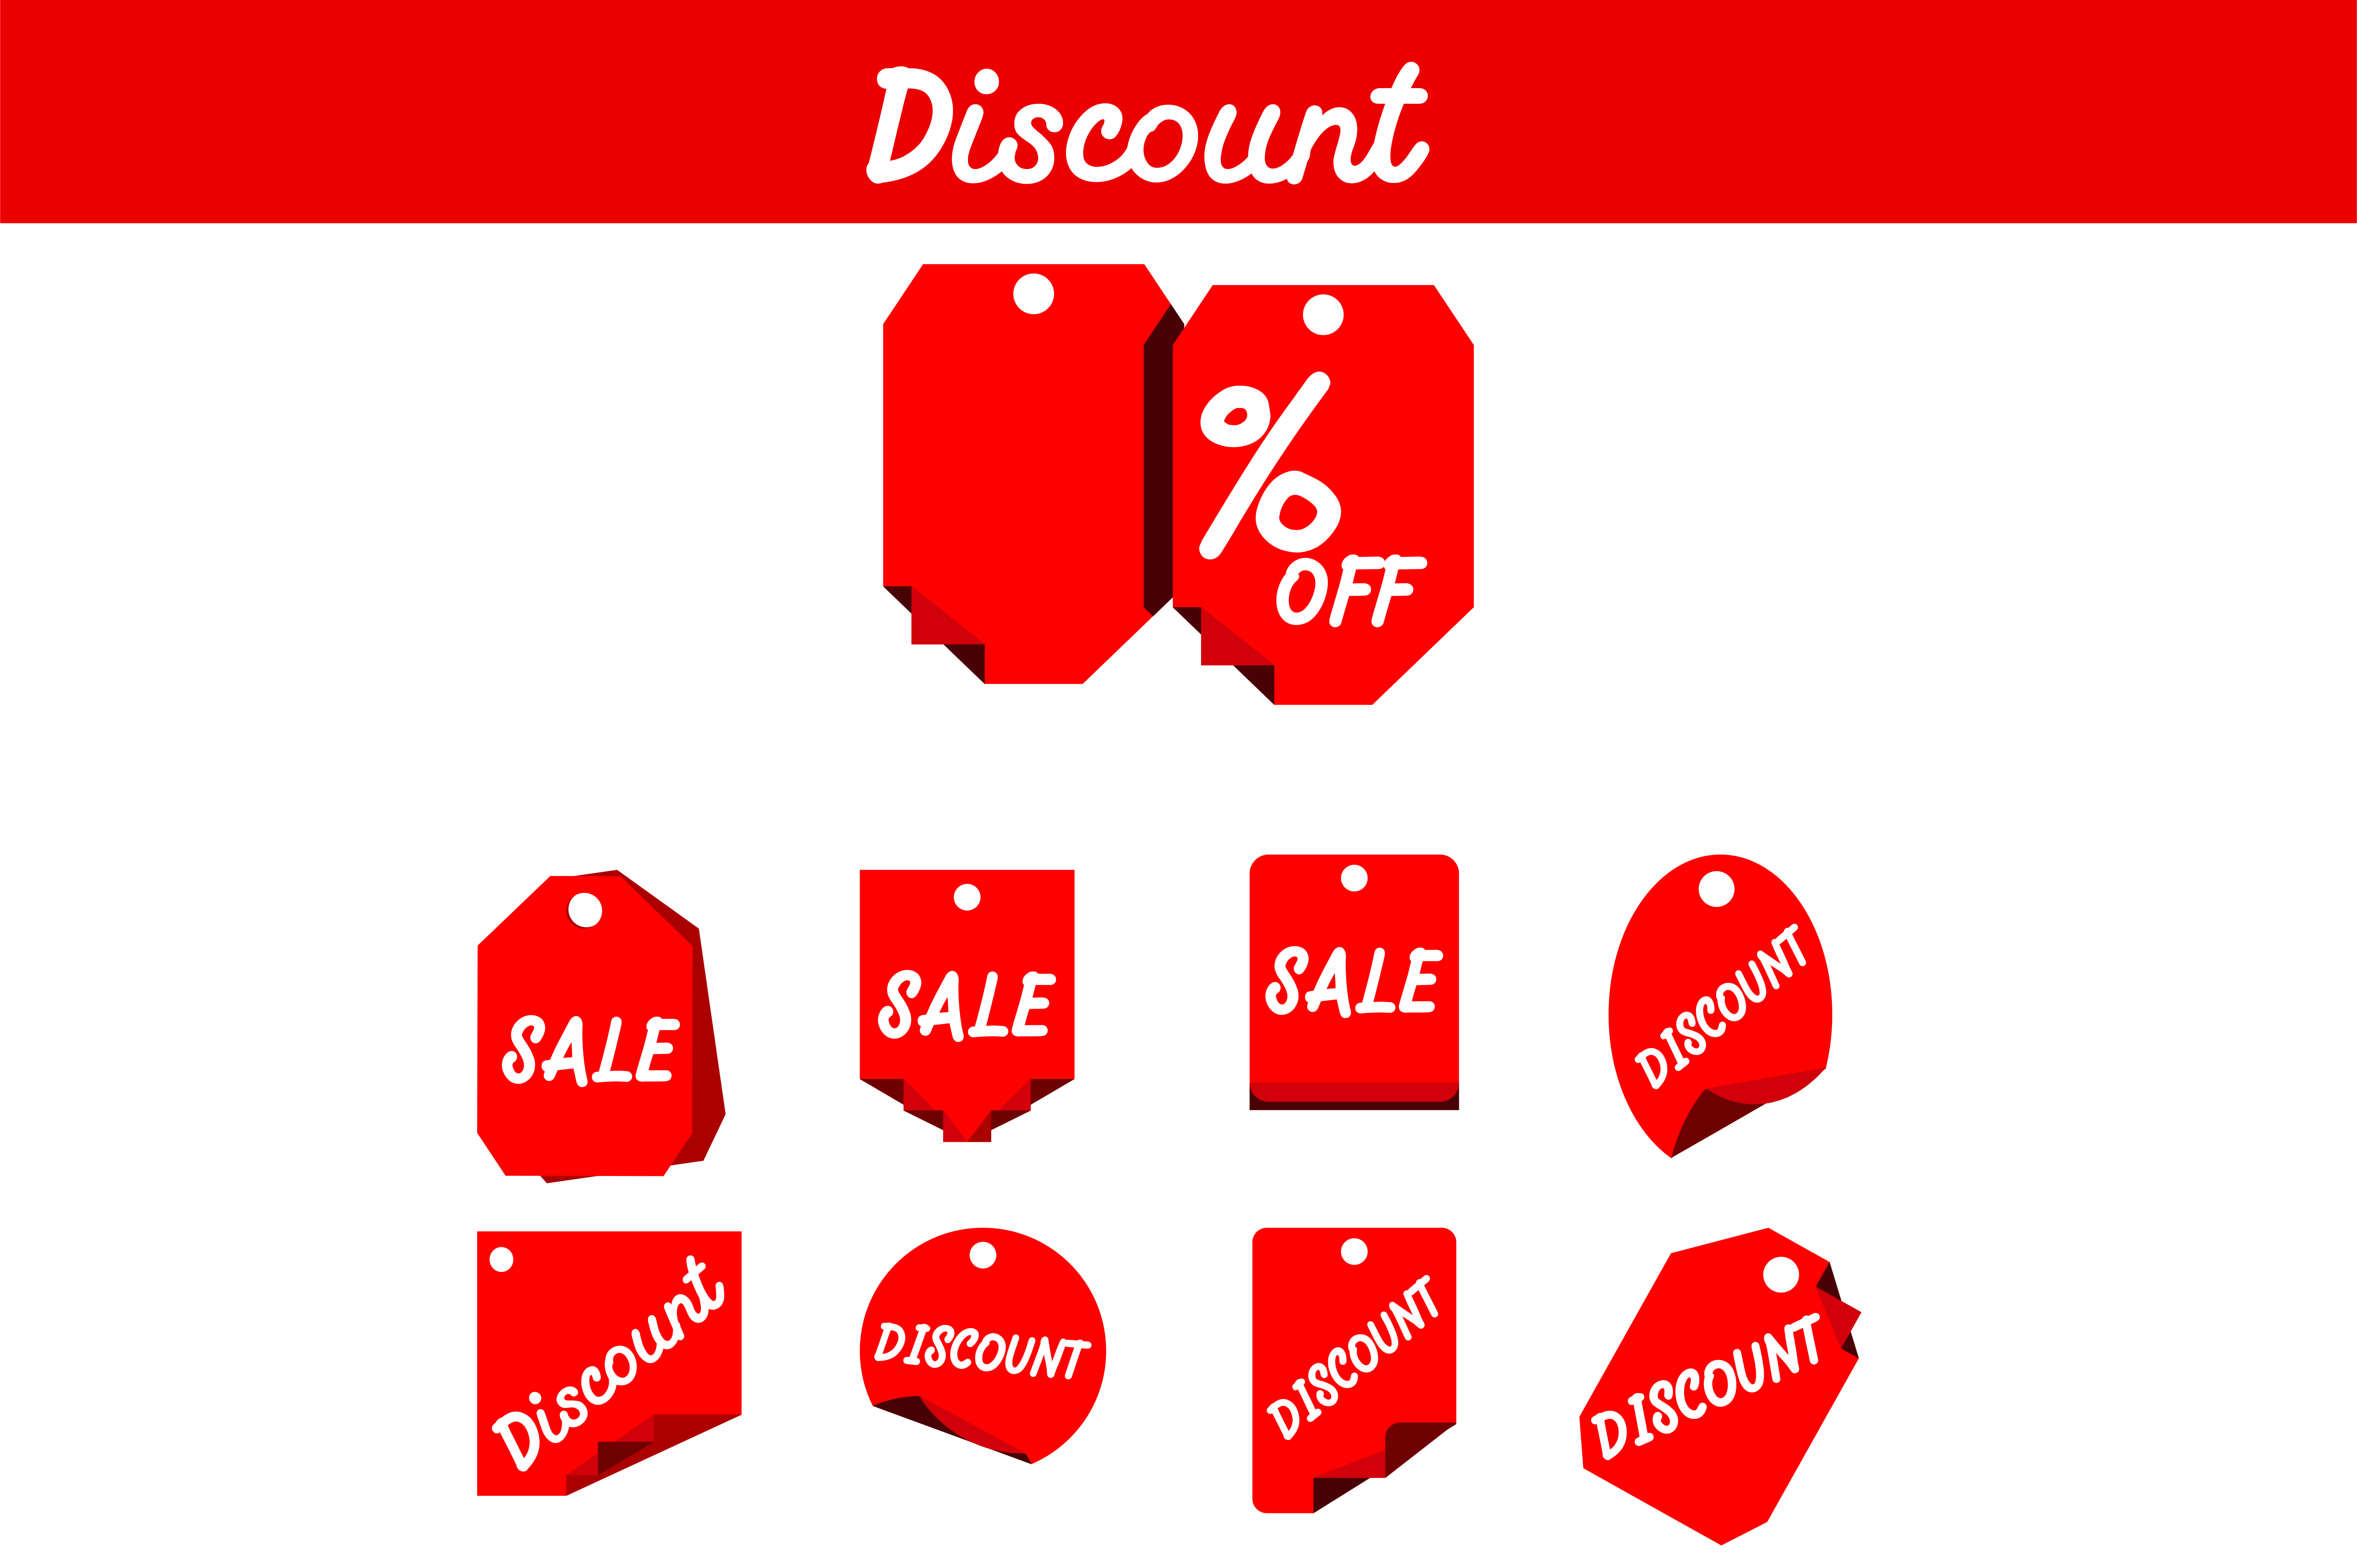 Download Free Red Label Discount Bundle Graphic By Arief Sapta Adjie for Cricut Explore, Silhouette and other cutting machines.